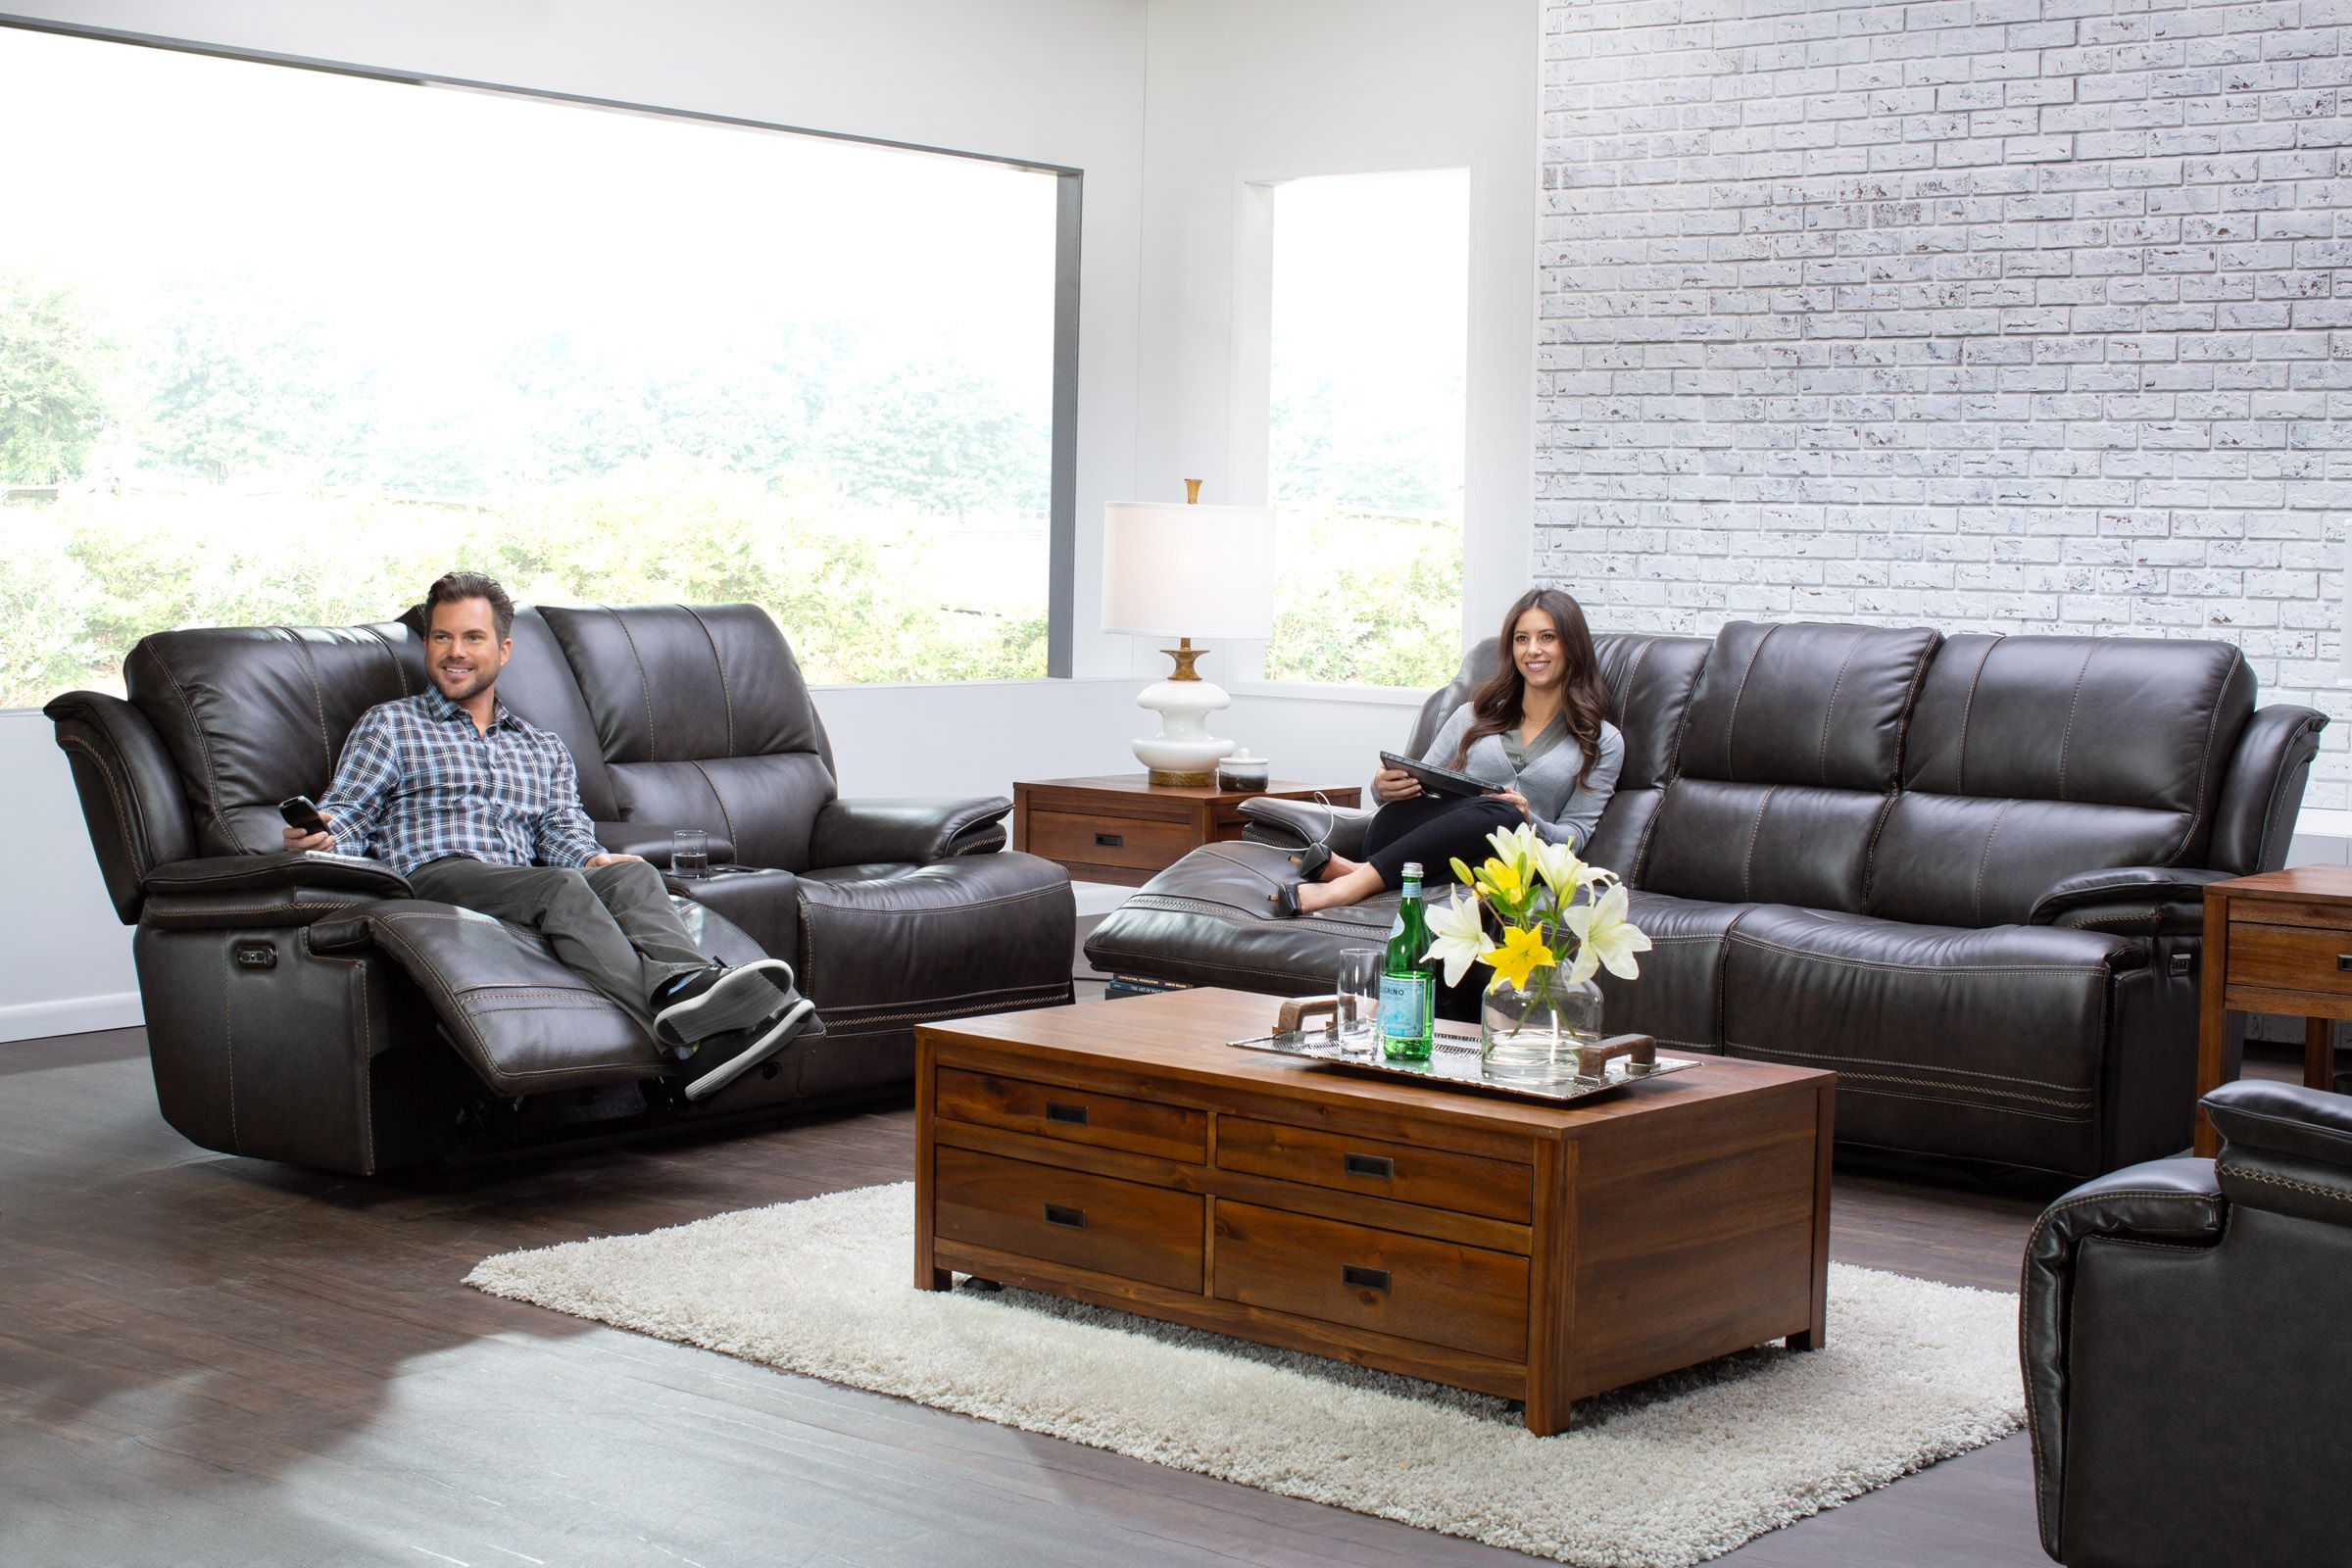 futura leather and vinyl power reclining sofa with headrest in stone large dark grey corner juno living room collection